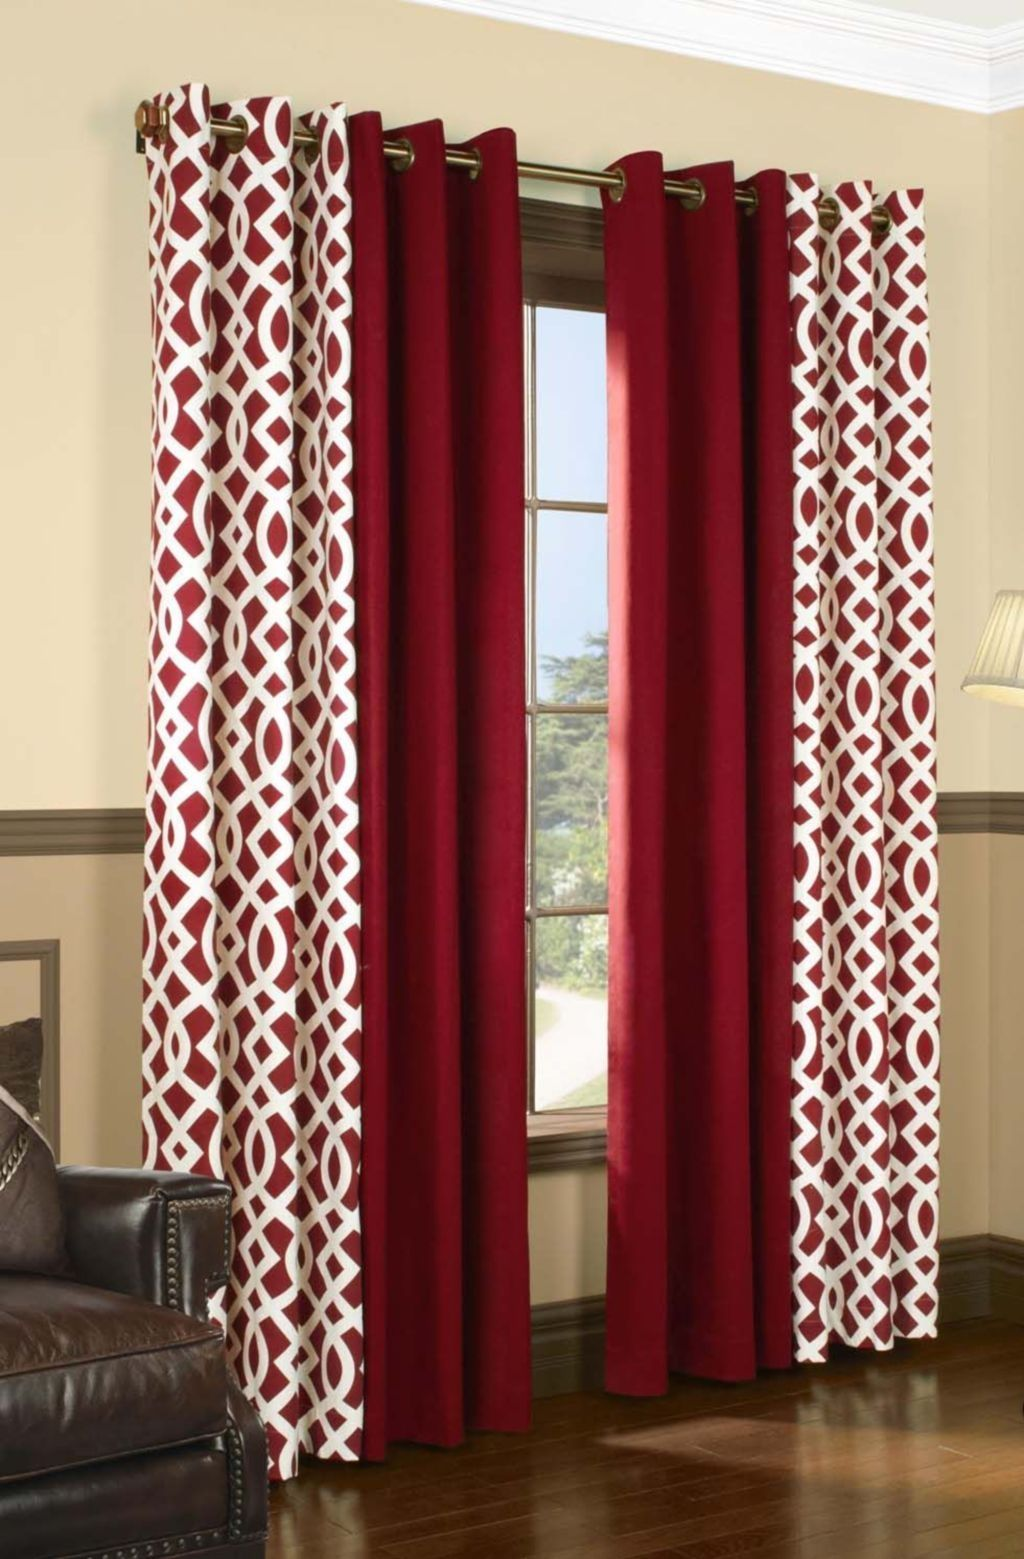 30 Cool Curtain Ideas For Living Room Home Curtains Curtains Living Room Living Room Windows